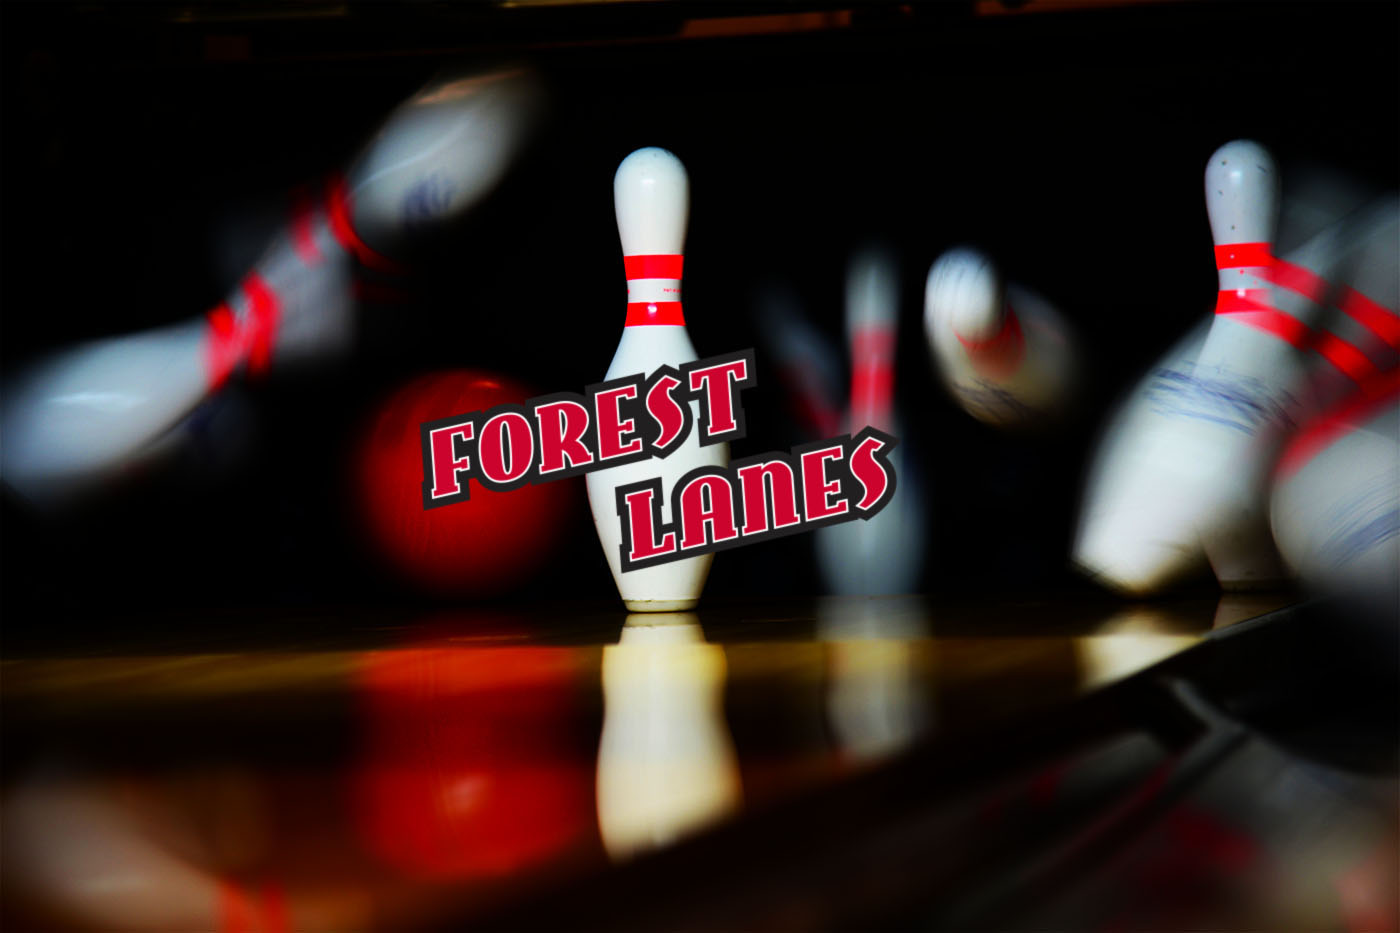 Forest Lanes pins